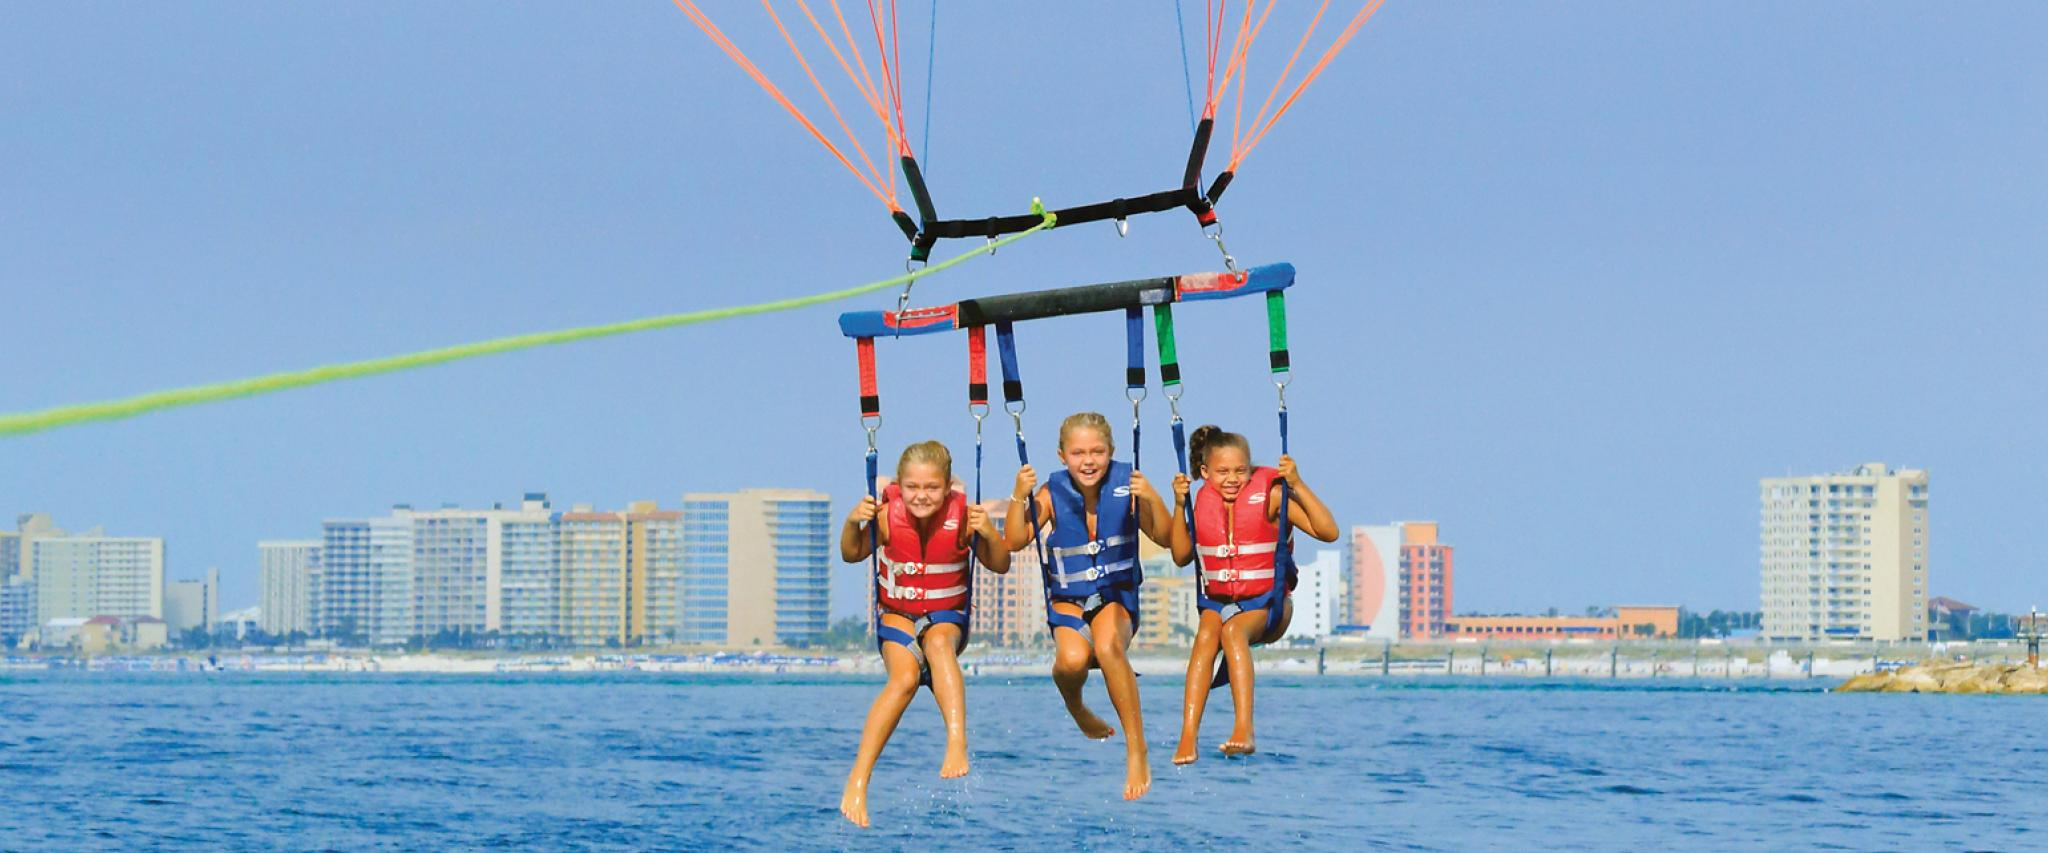 Parasailing on Alabama's Beaches